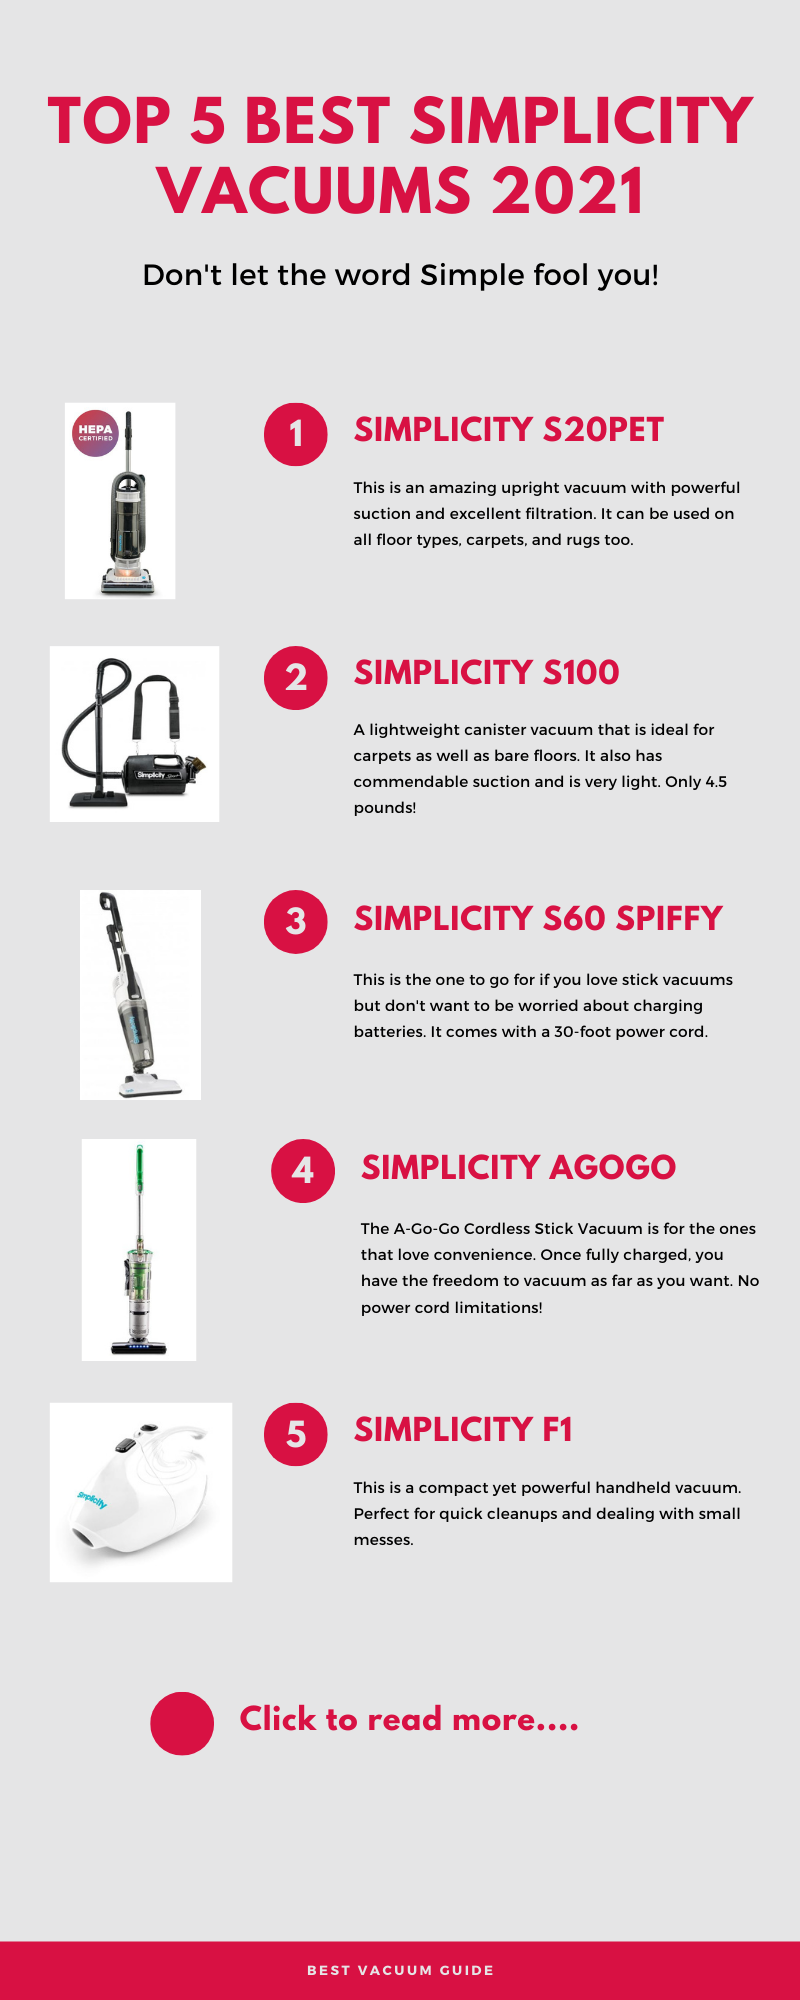 Best Simplicity Upright Vacuum 2021 Infographic